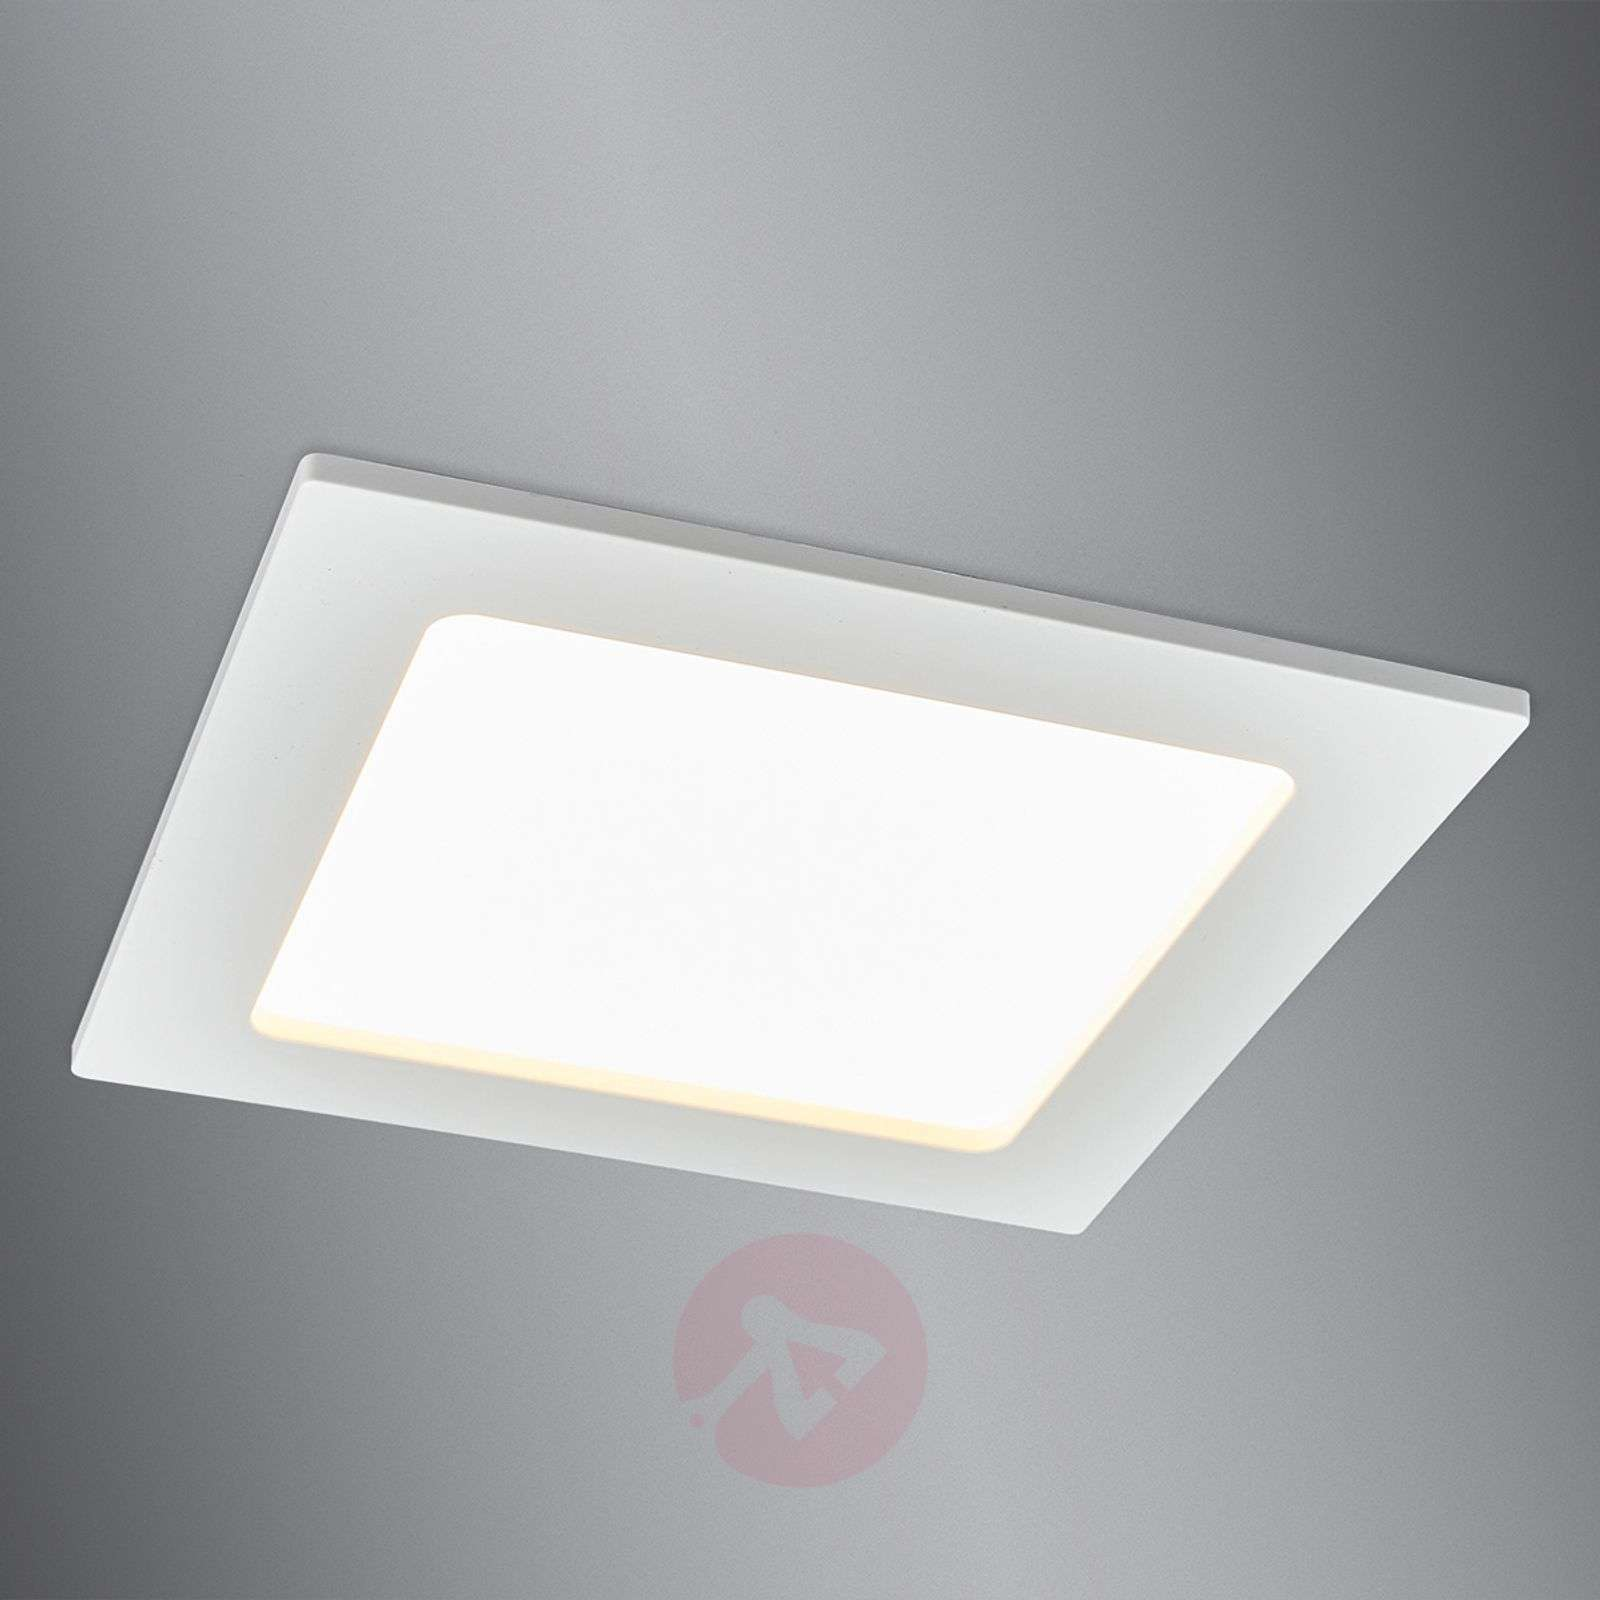 Spot encastrable LED discret Feva, 10,5 W-9978017-019